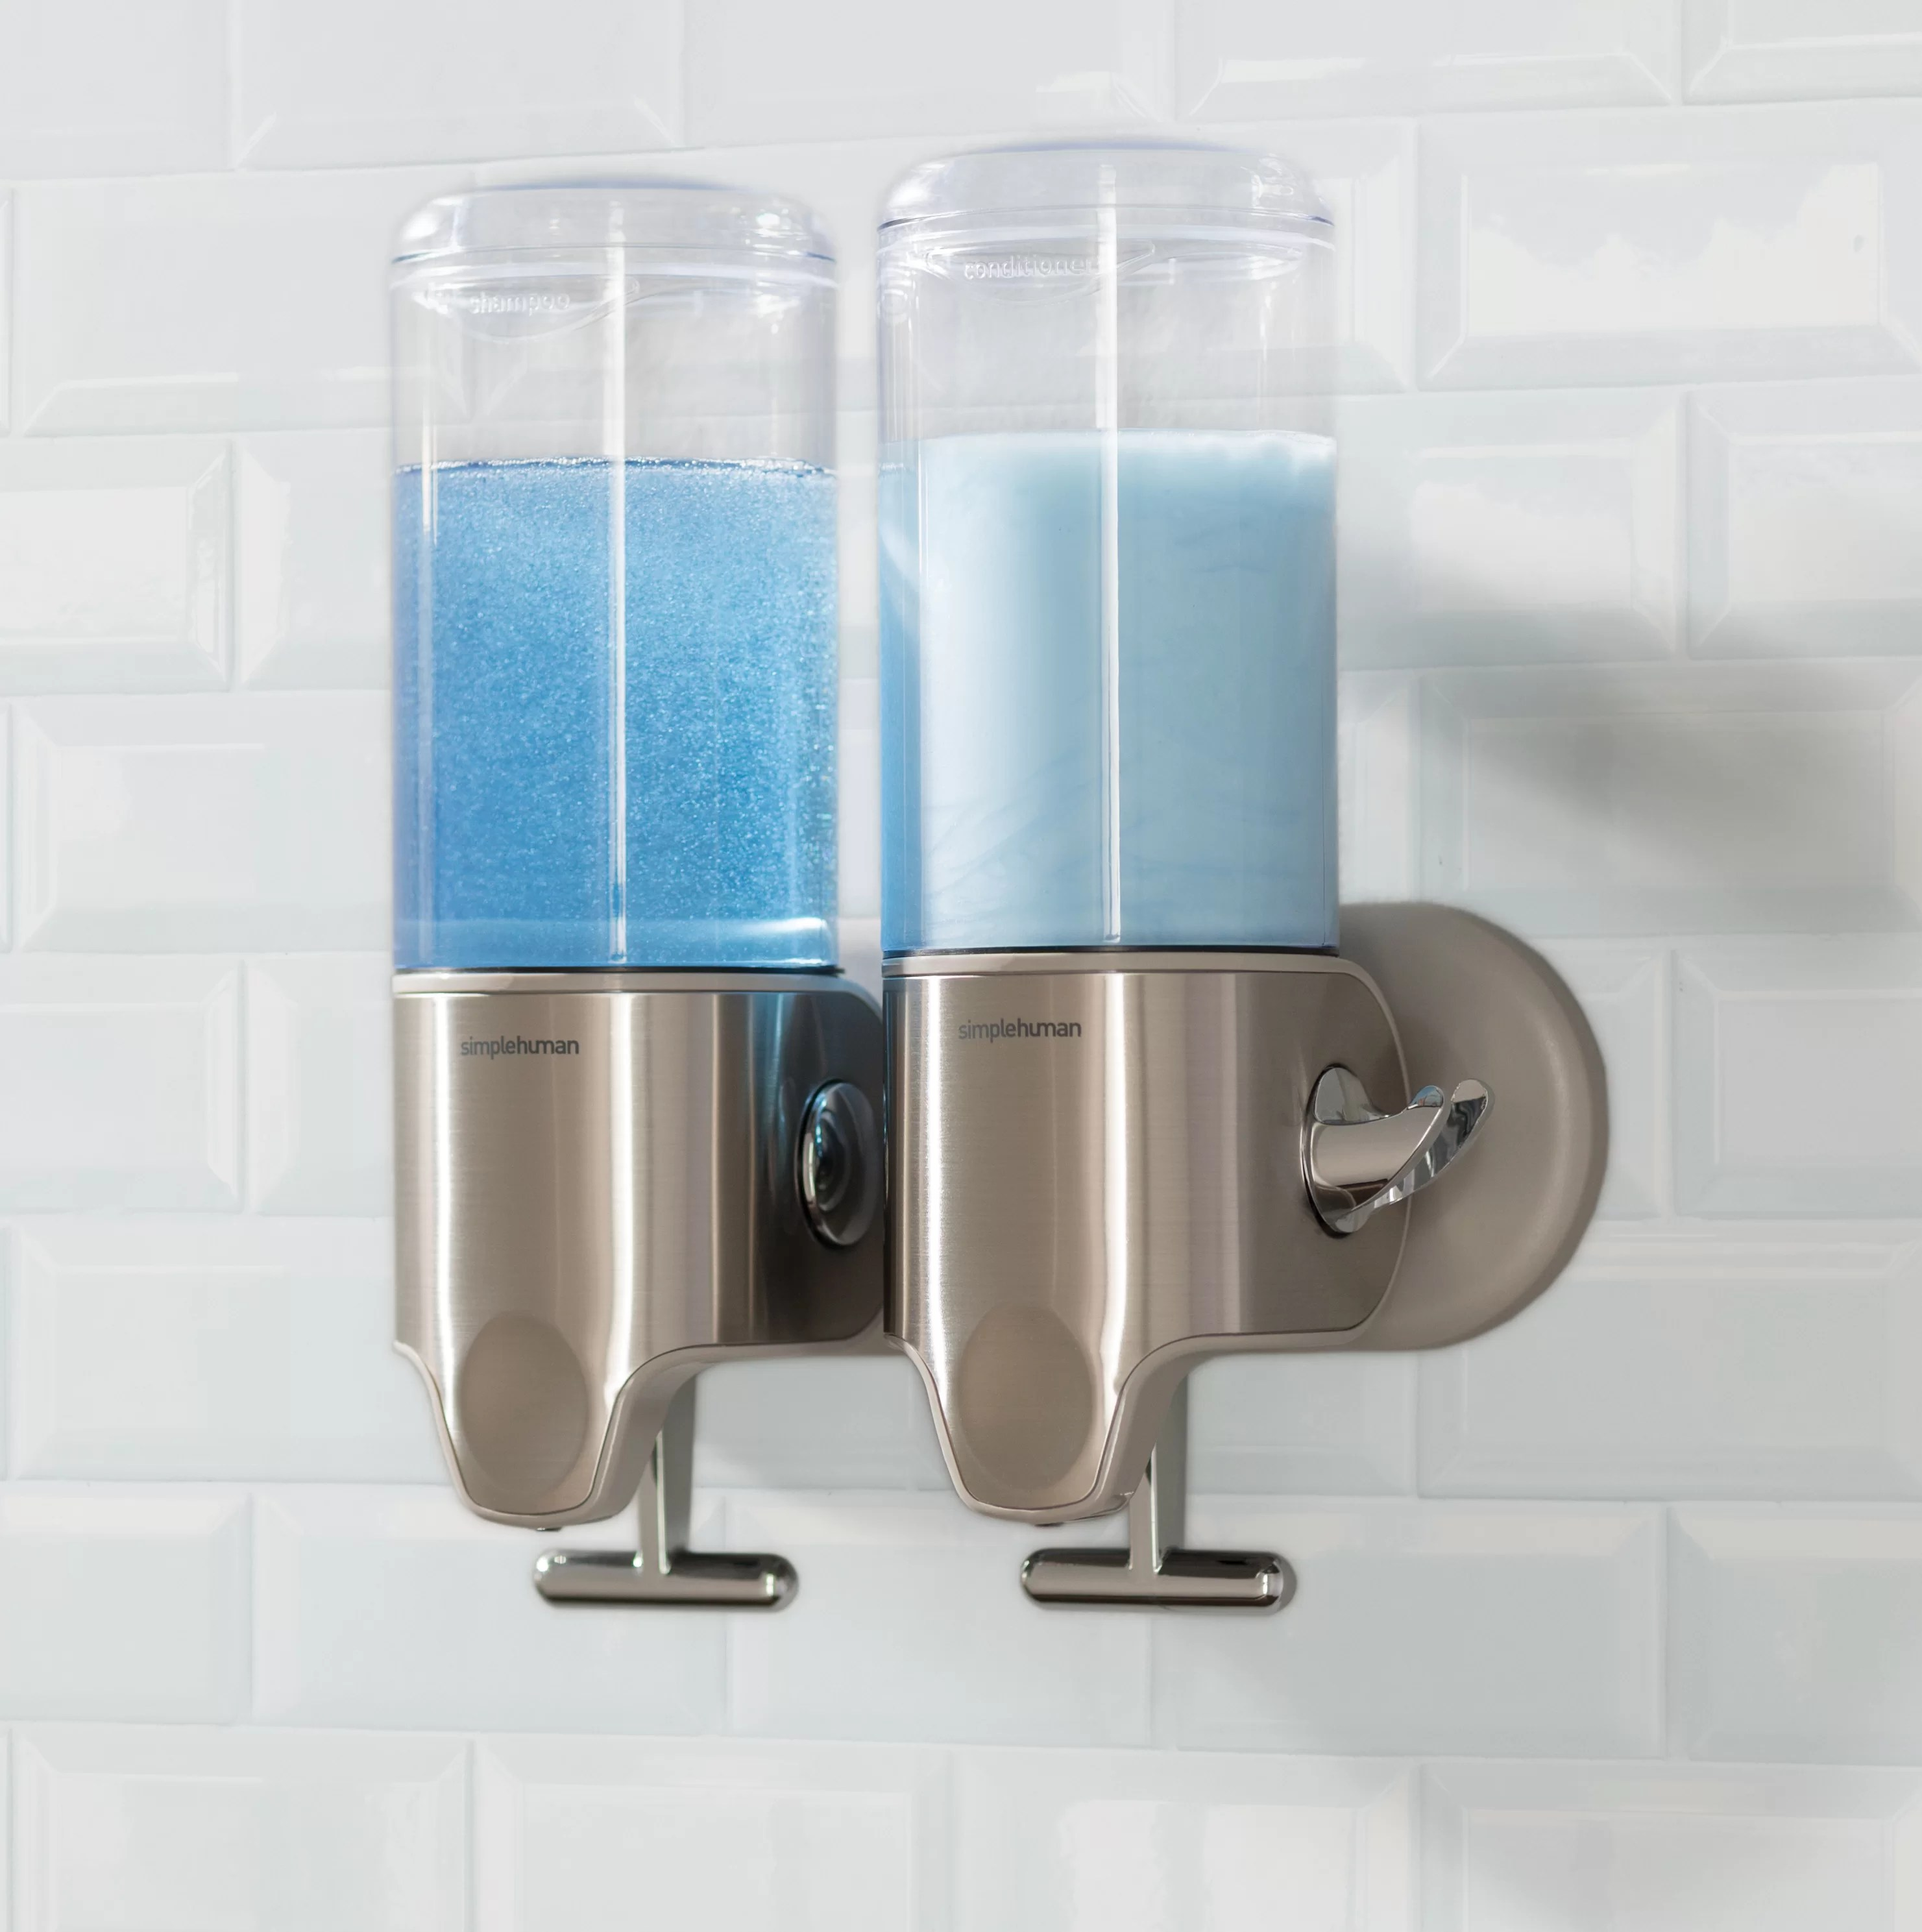 Soap And Shampoo Dispenser Twin Wall Mount Soap Pumps 15 Fl Oz Each Stainless Steel